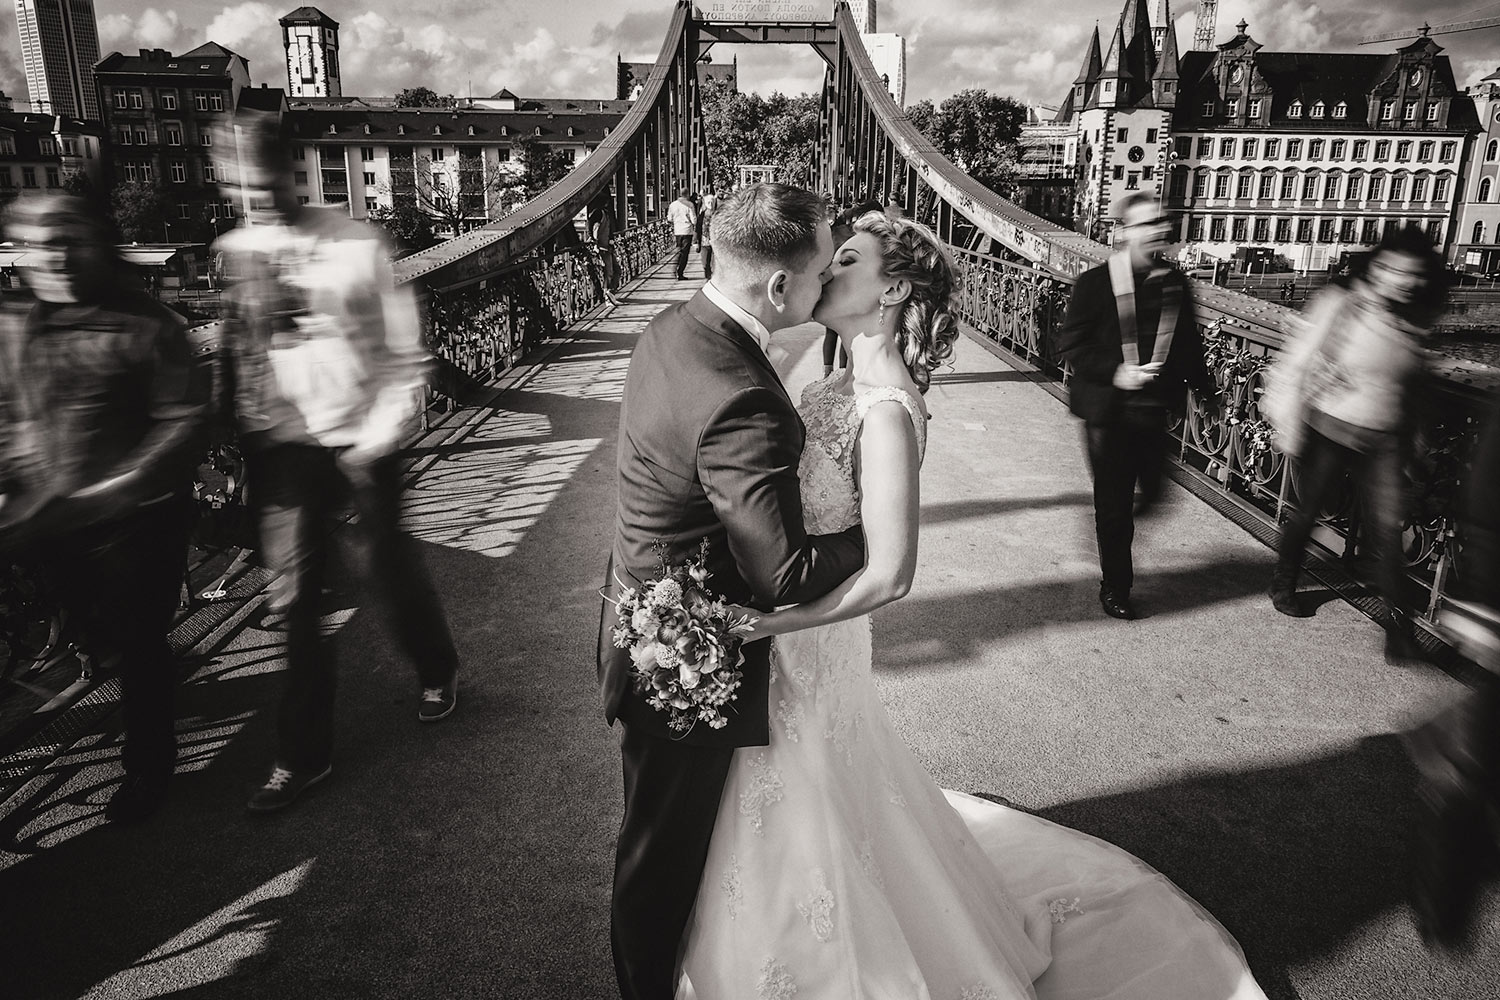 Wedding photographer Frankfurt - True Love Photography